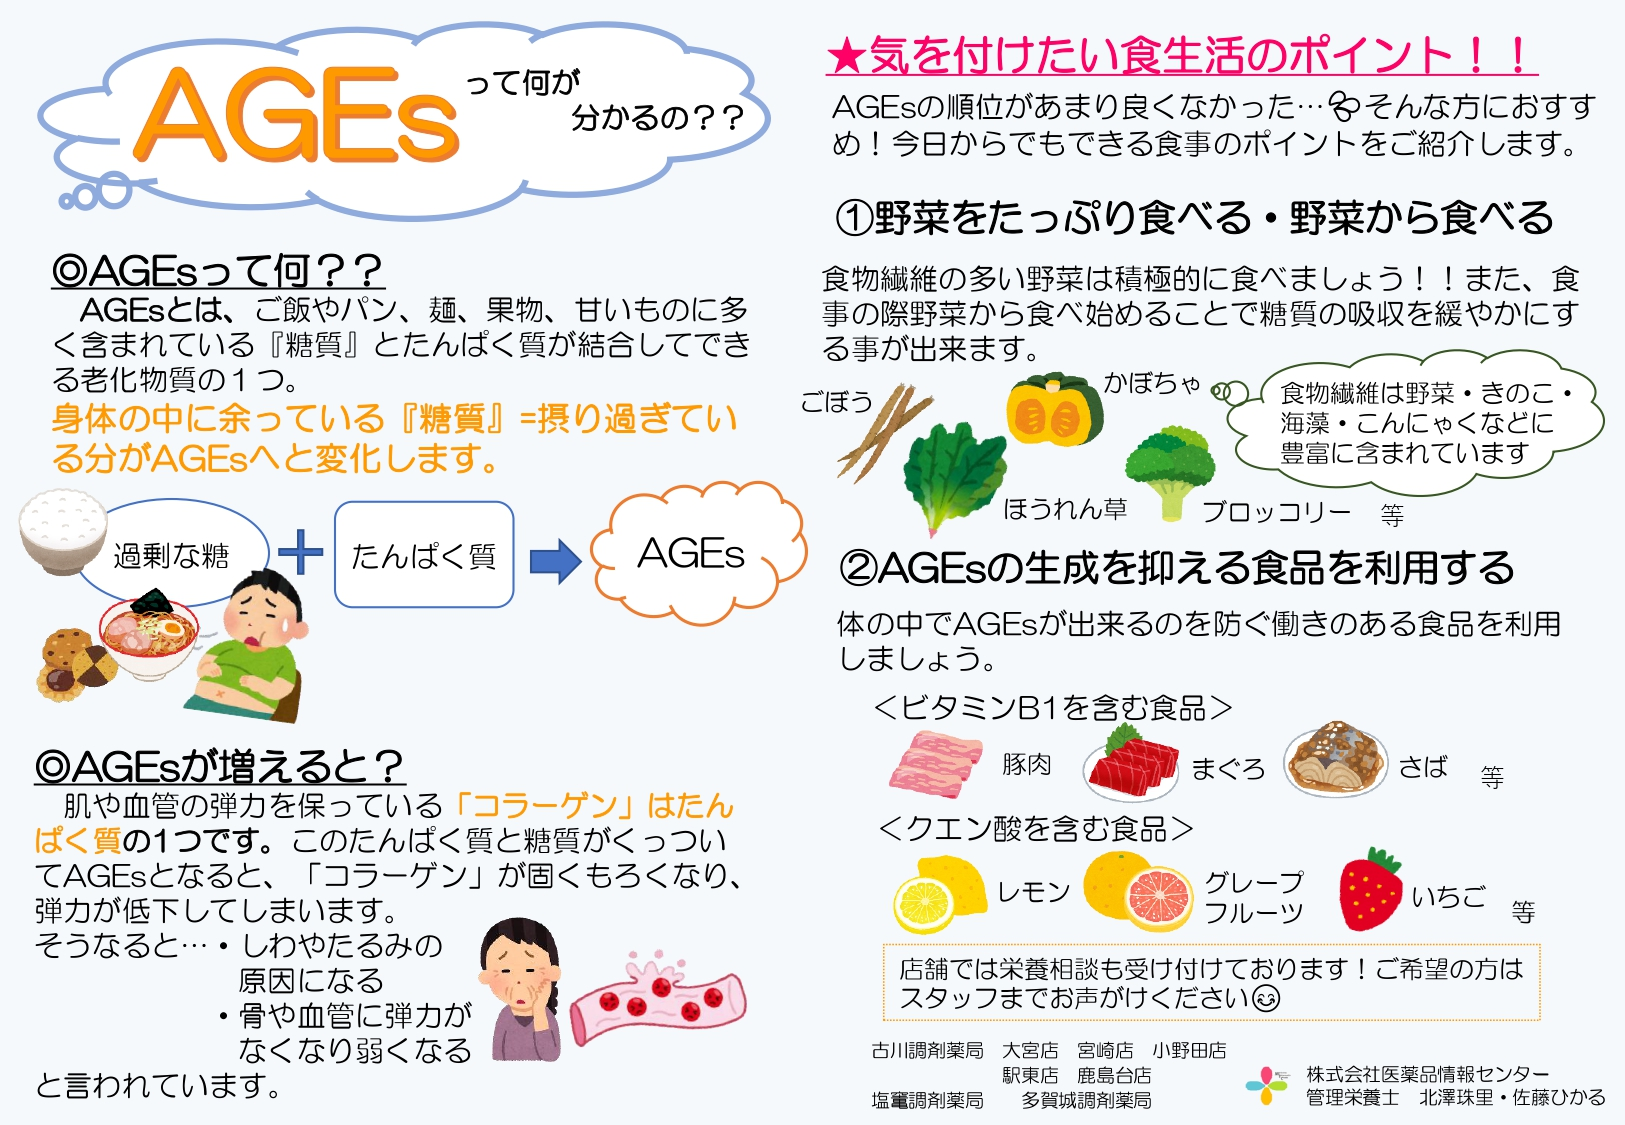 AGEs リーフレット ②_page-0001